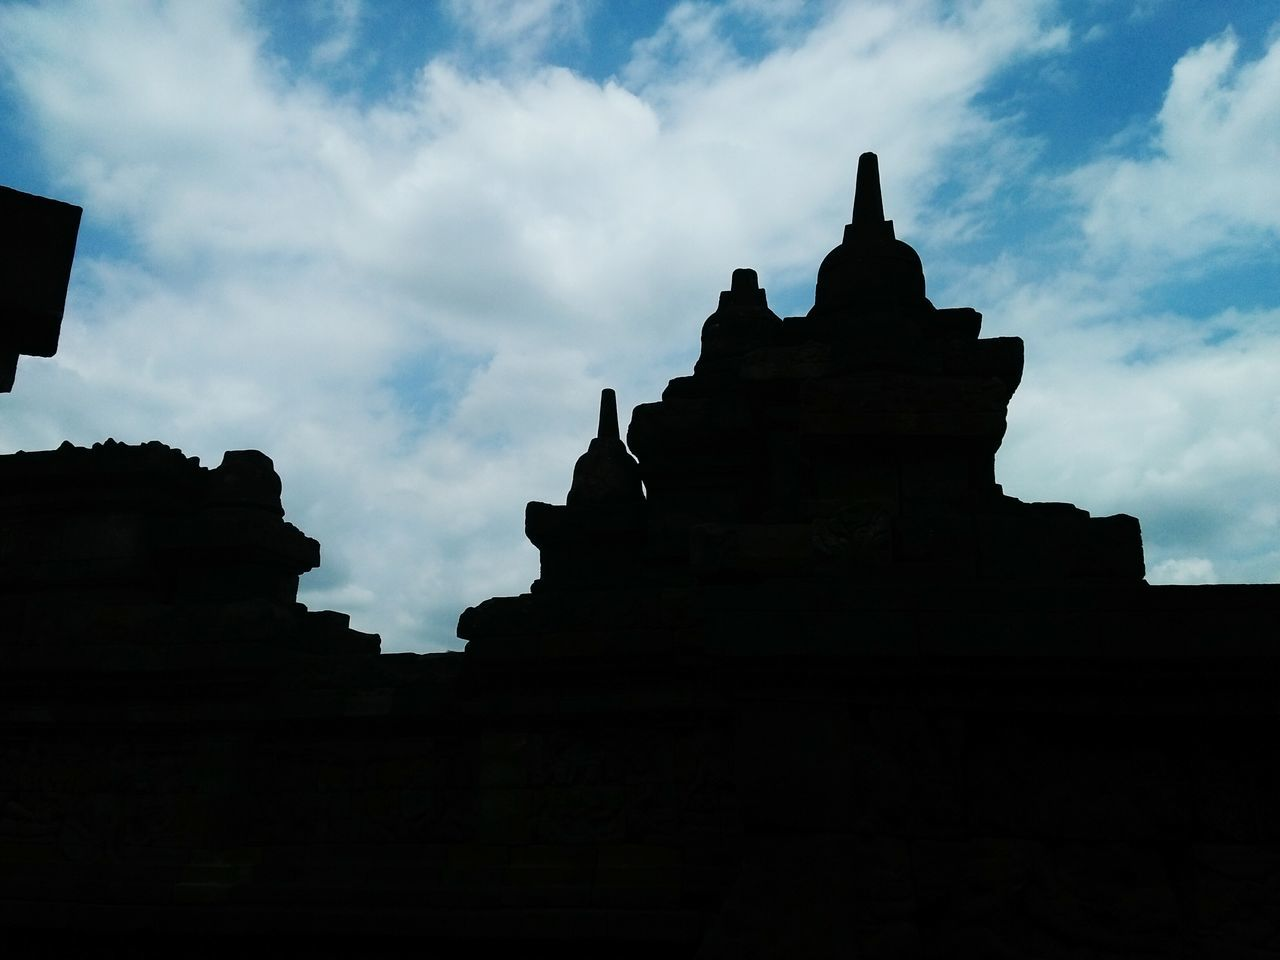 Shadows of Borobudur Temple :) Travel Destinations Cloud - Sky Tourism Outdoors Borobudur Temple, Indonesia Architecture Sky Day Travel Trip Photos Sky And Clouds Skyline Sky Porn Temple Architecture Beautiful Silhouette Silouette & Sky Silhoutte Photography Taken by me.